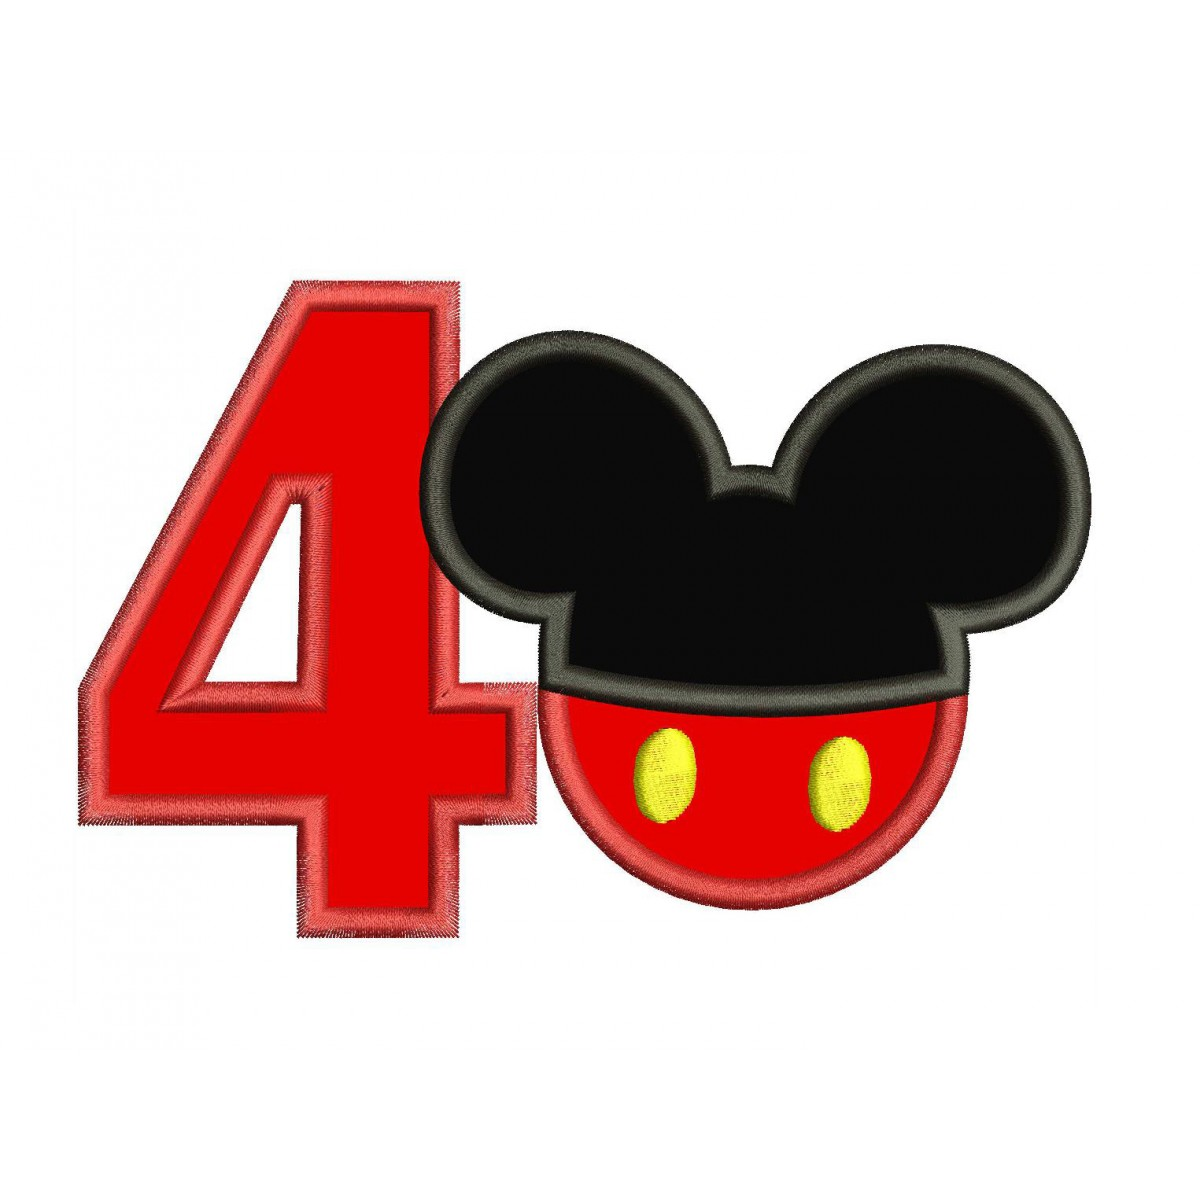 4th Birthday Mickey Number 4 Applique Design